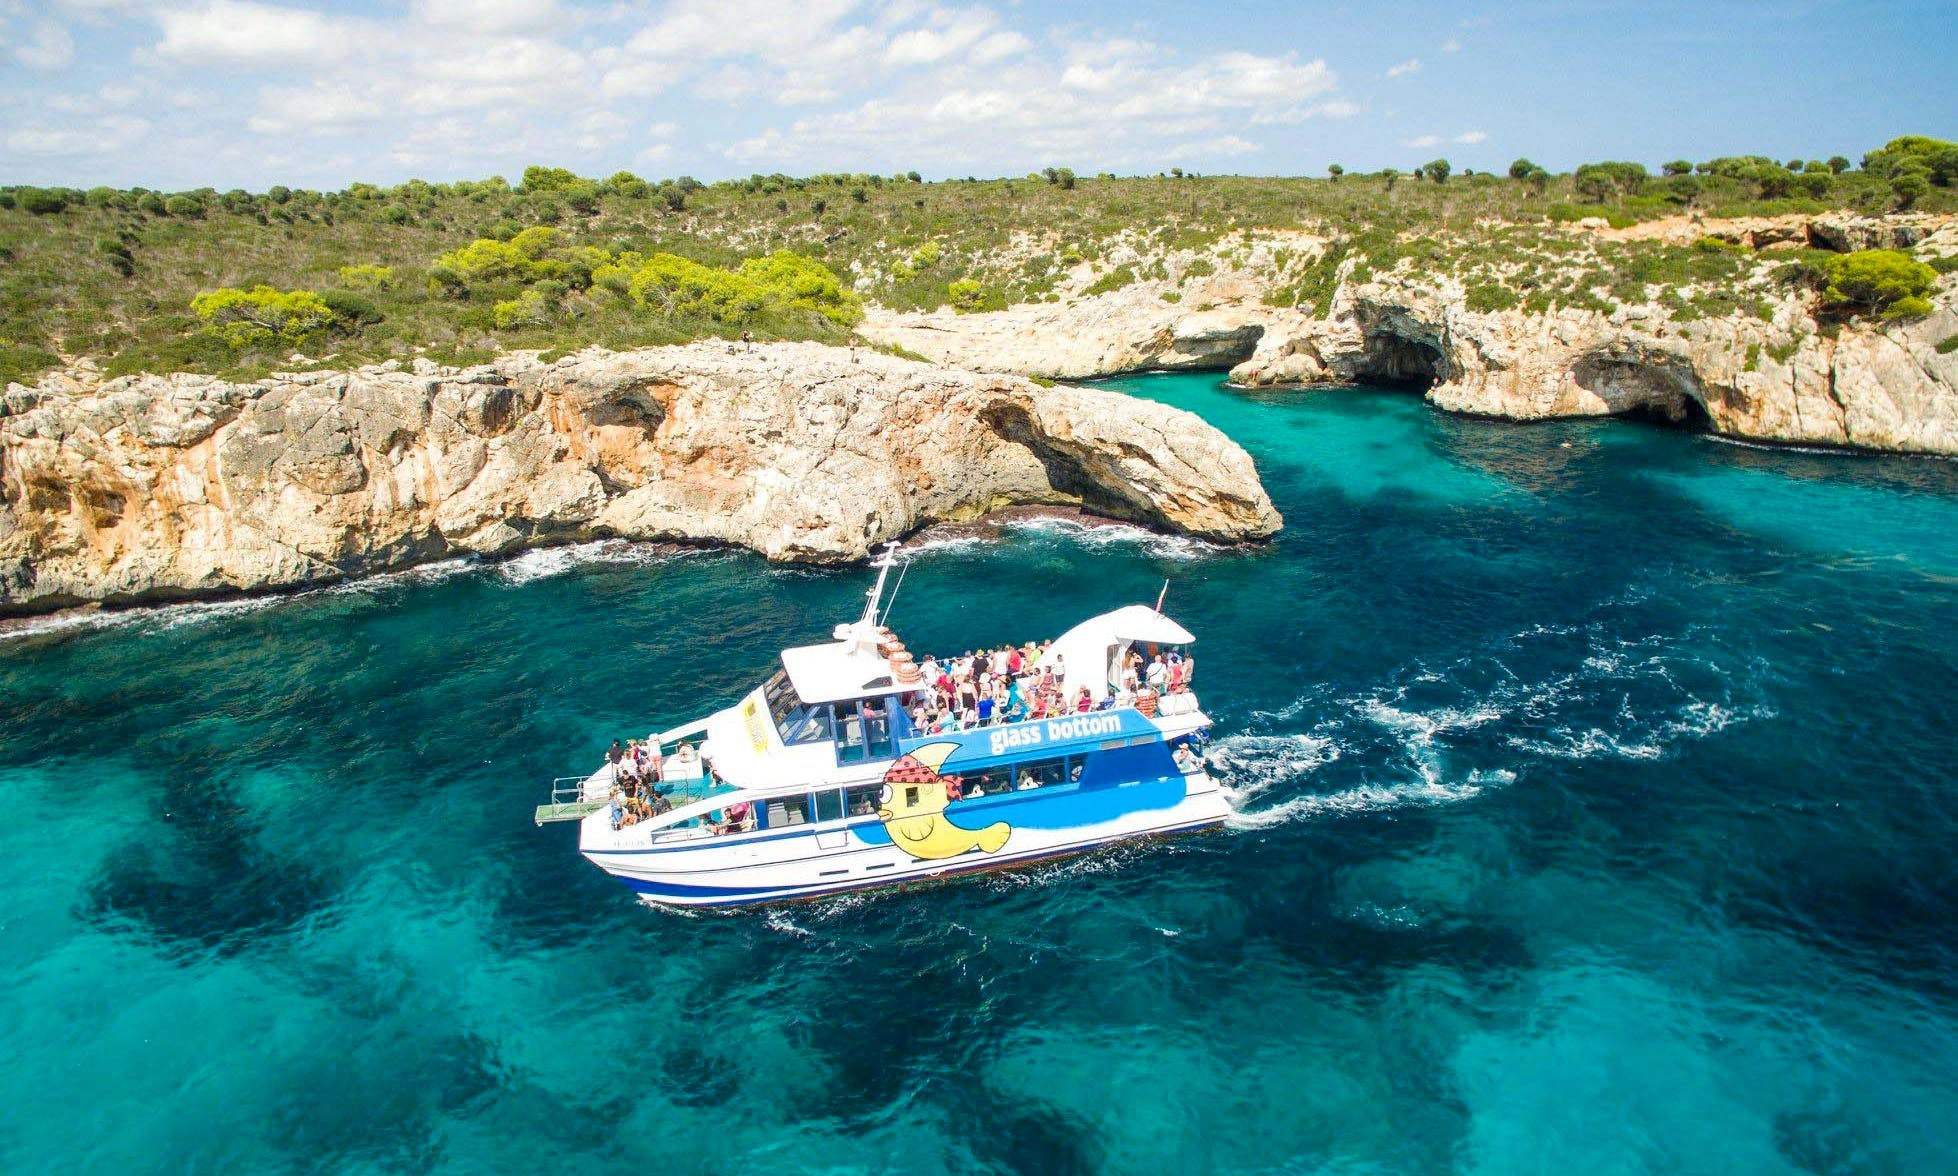 Enjoy The Best Glass Bottom Boat Tour in Porto Cristo, Spain!